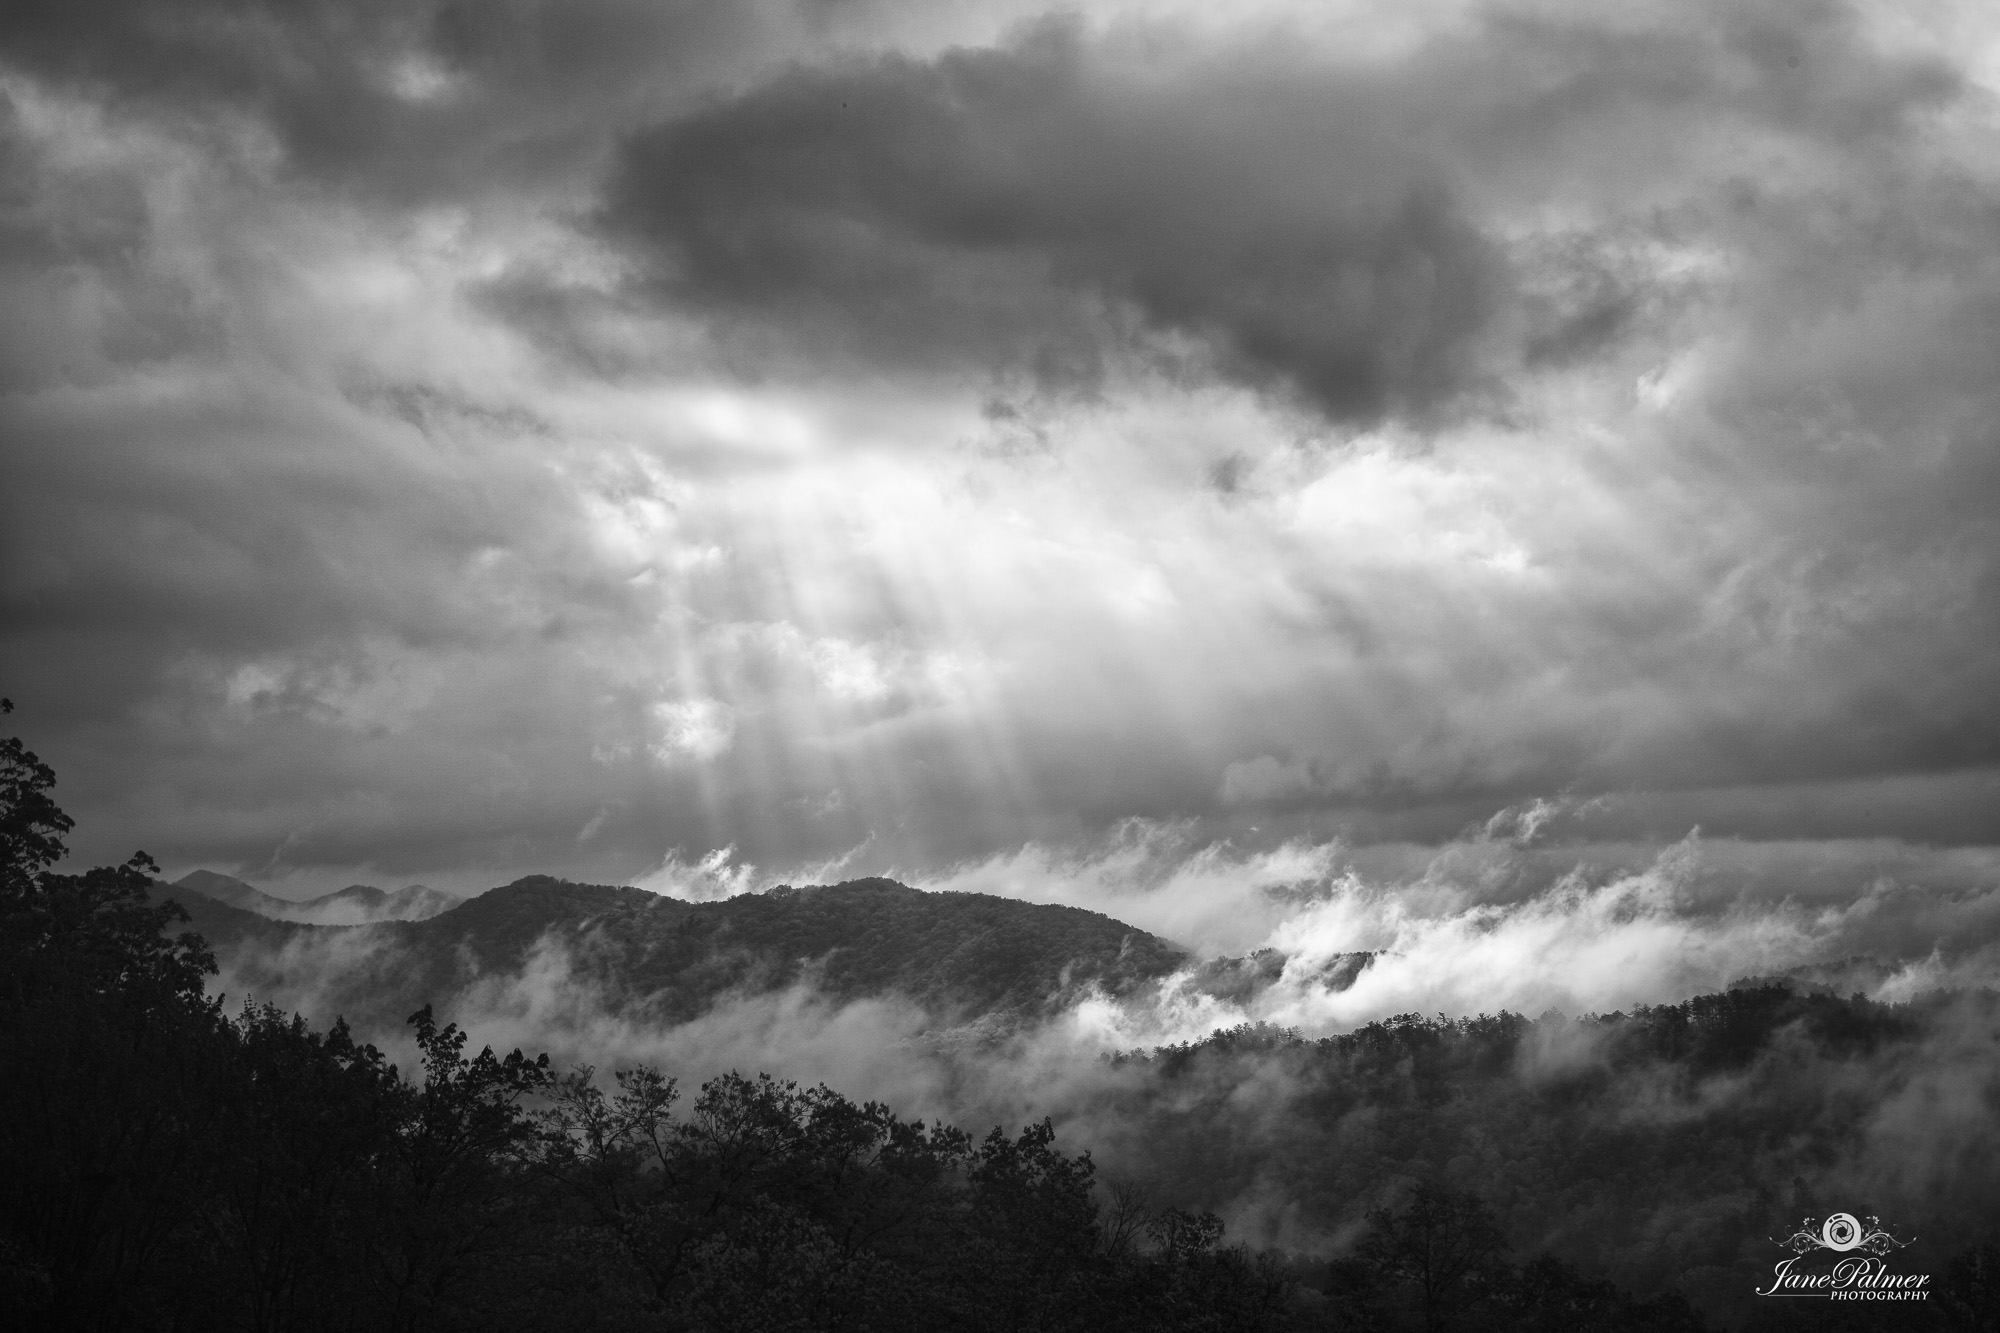 Black and White Nature Photography by Jane Palmer